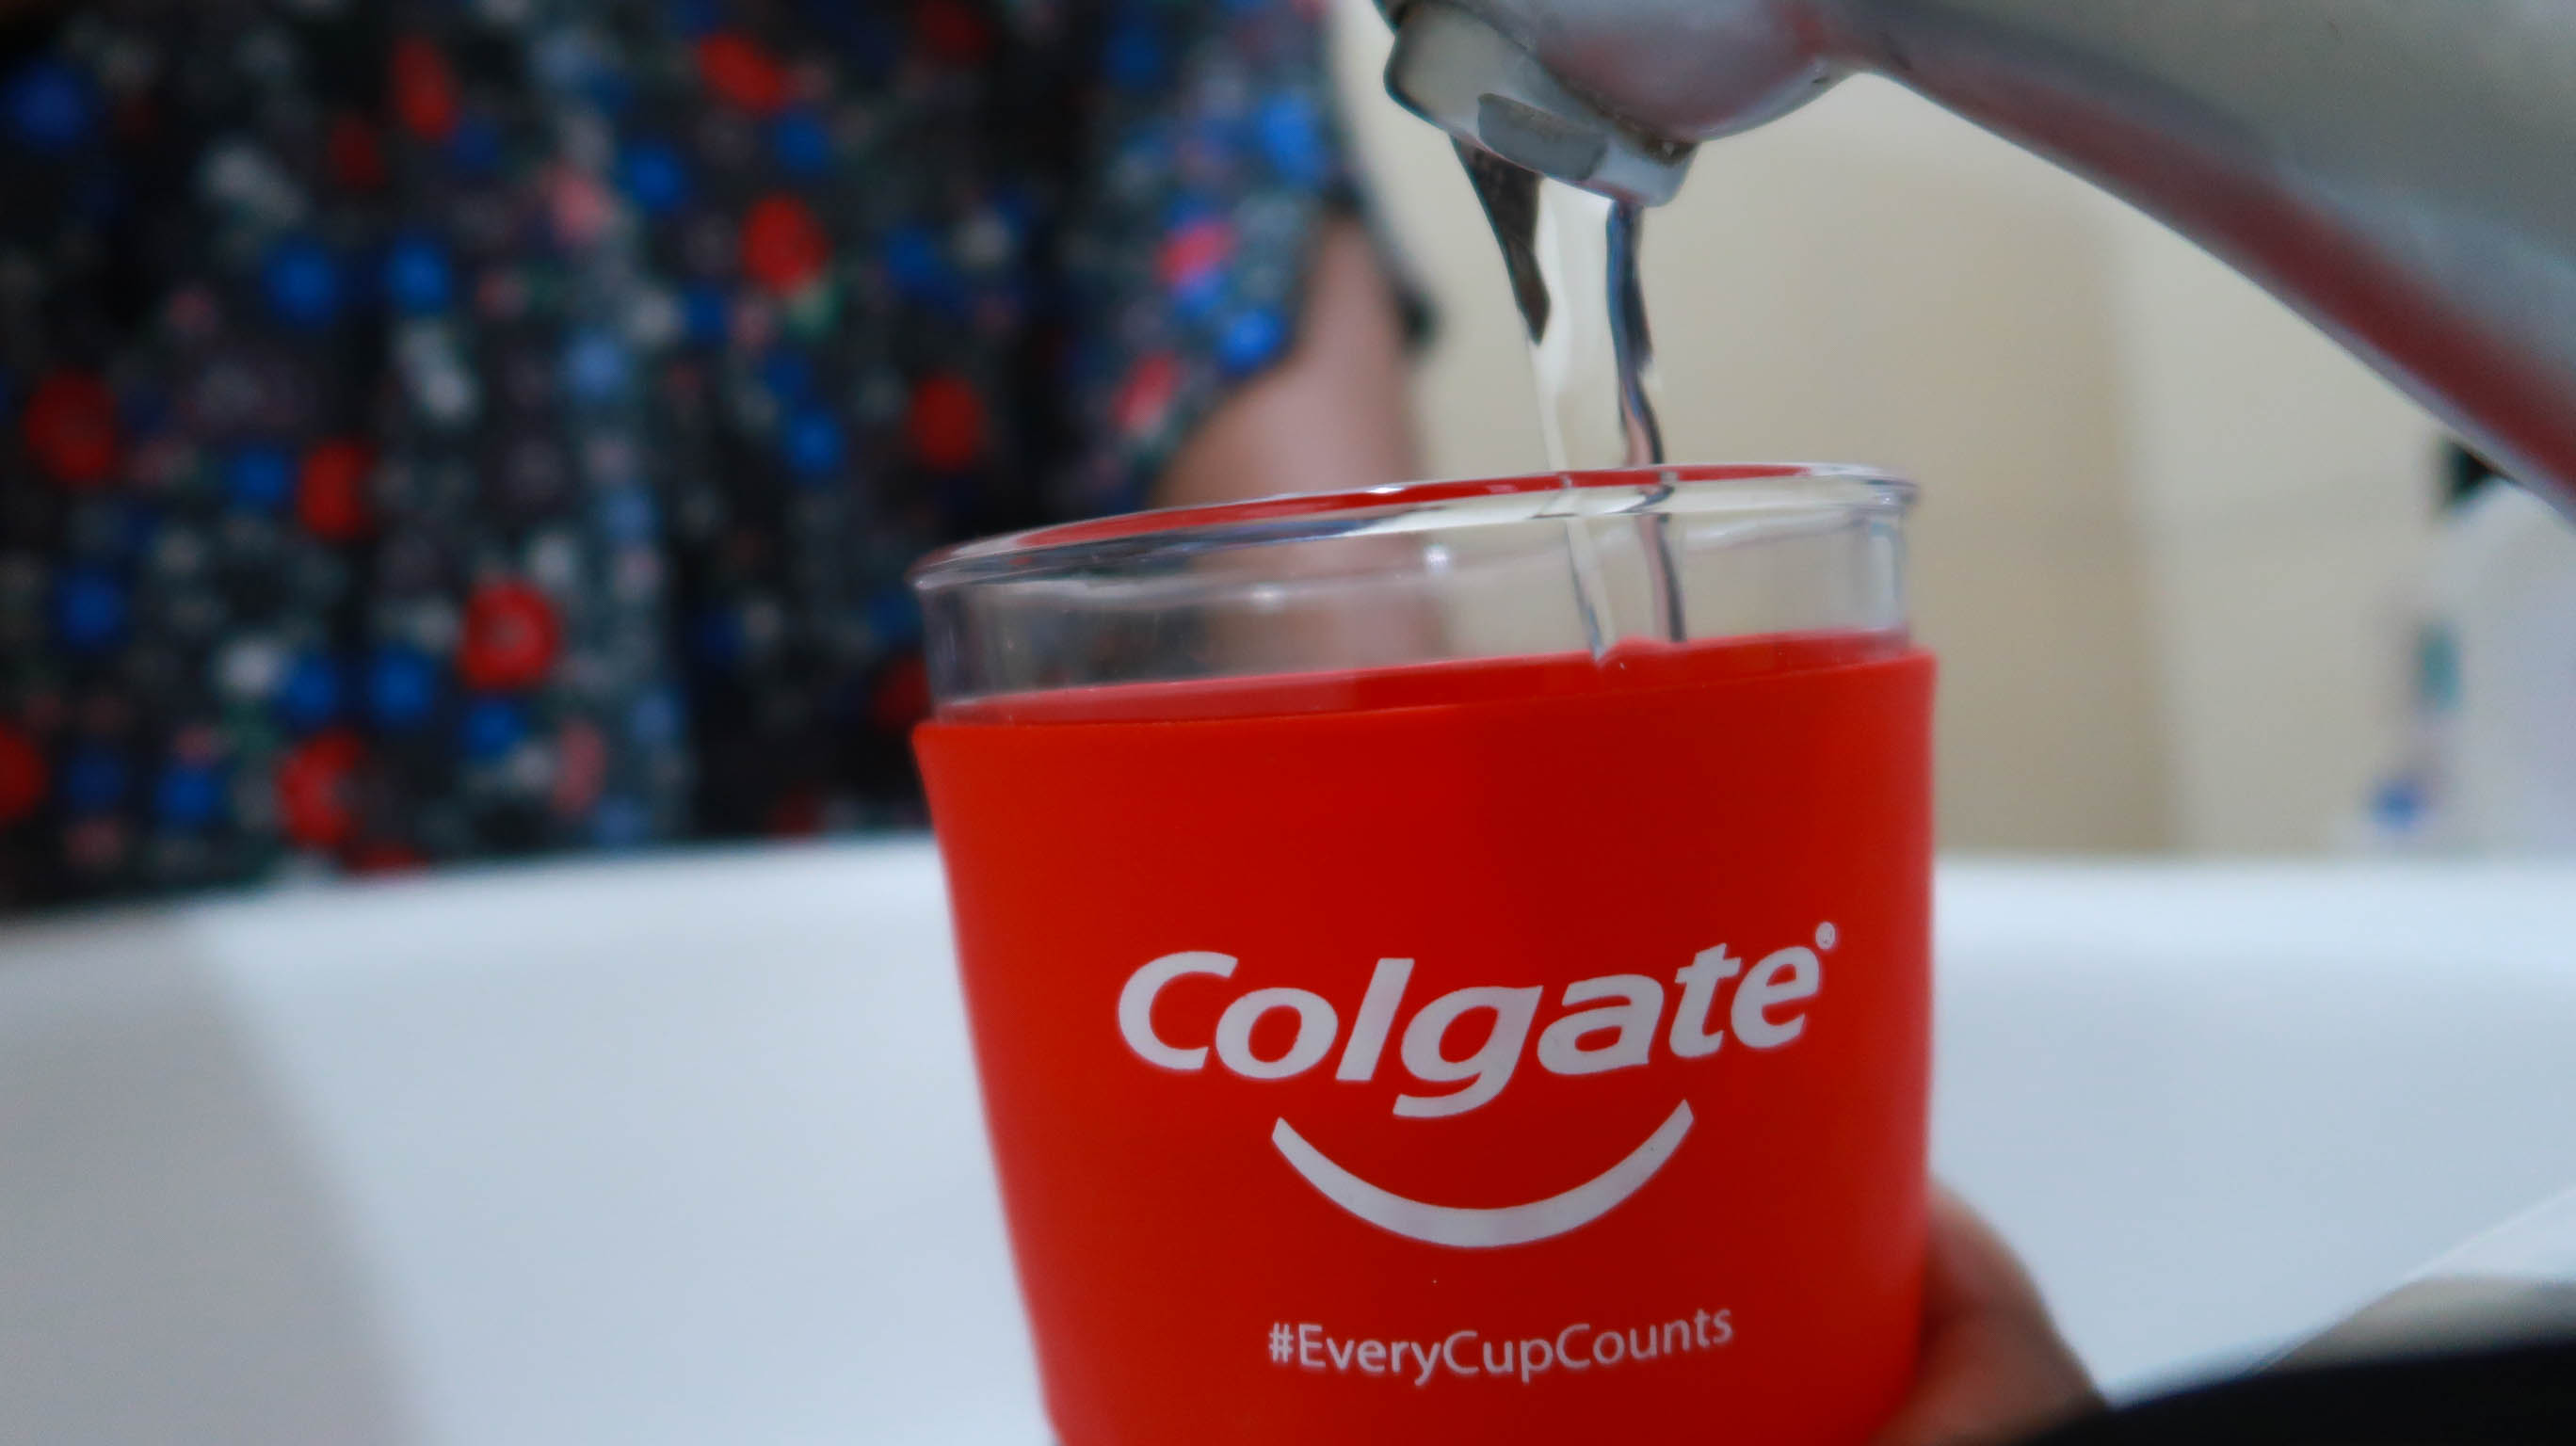 Colgate Every Cup Counts